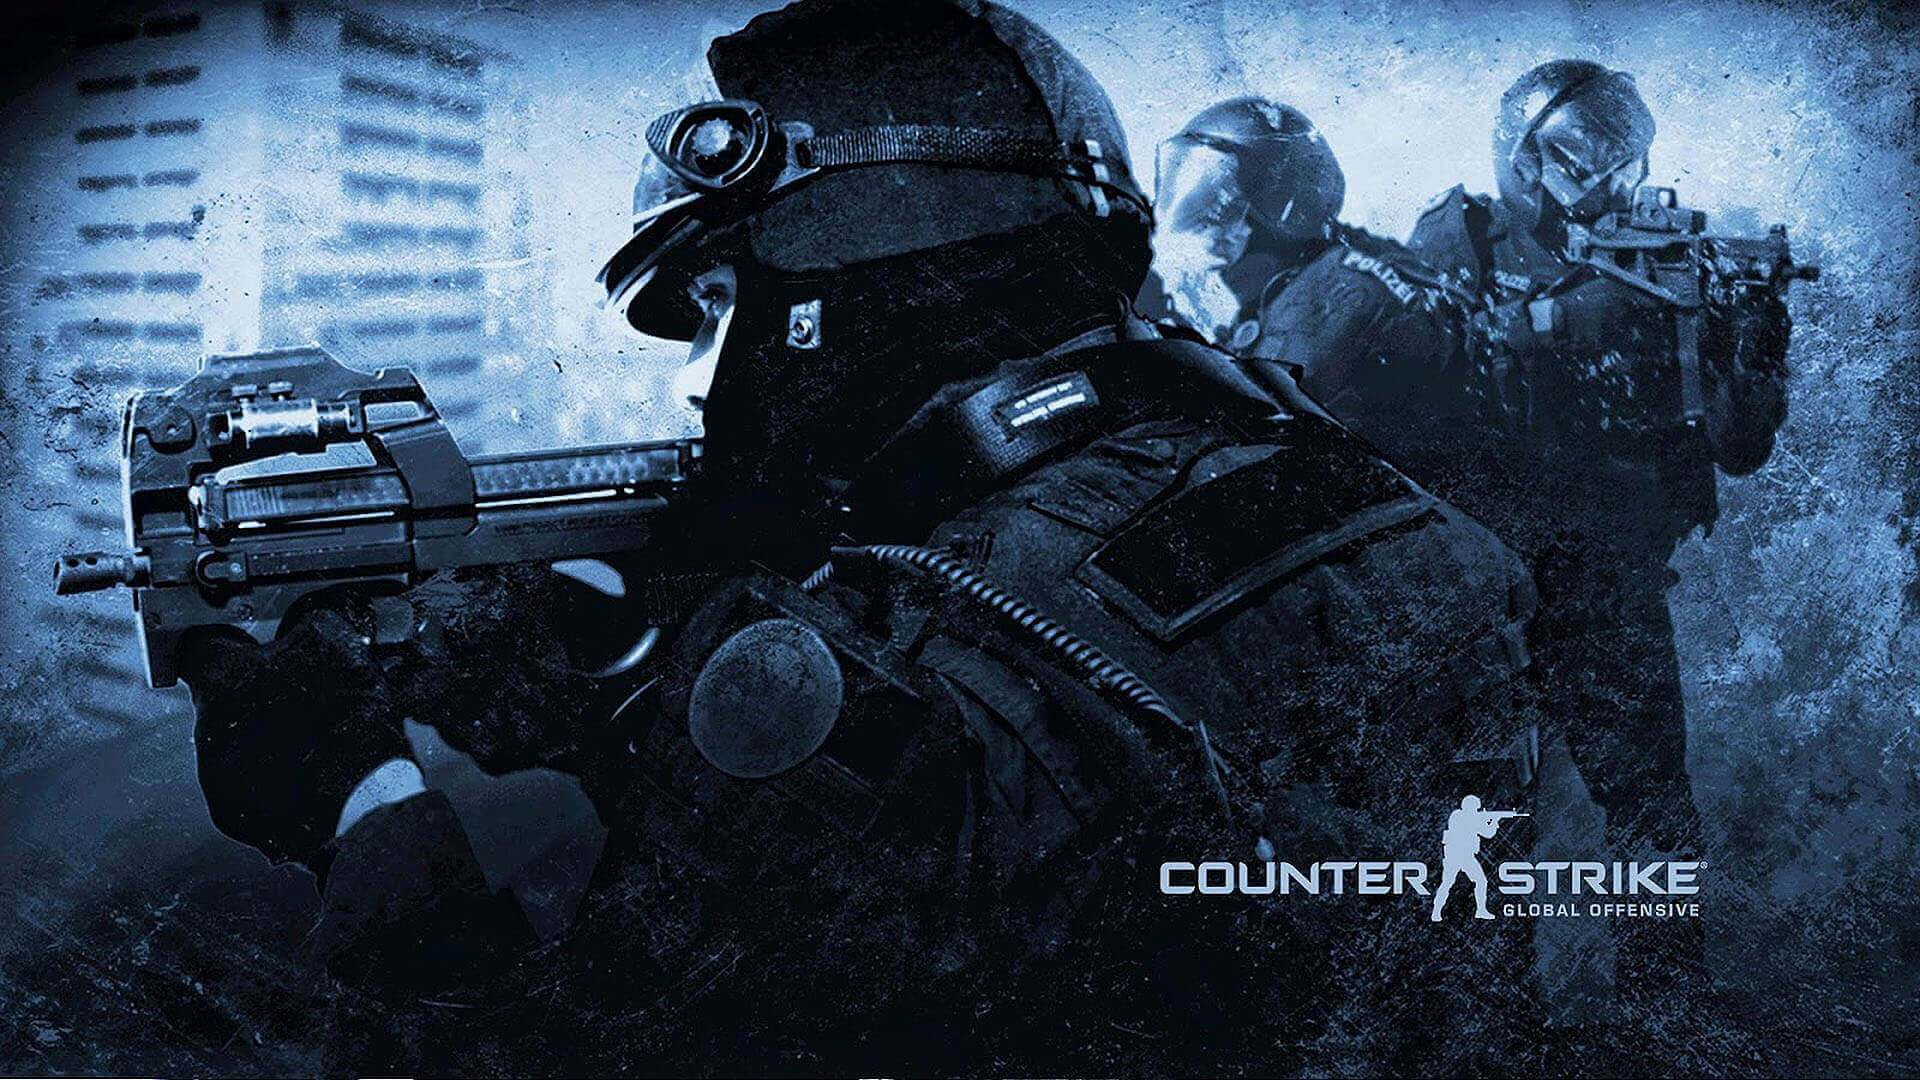 [GAME-PC] Counter-Strike: Global Offensive v1.35.7